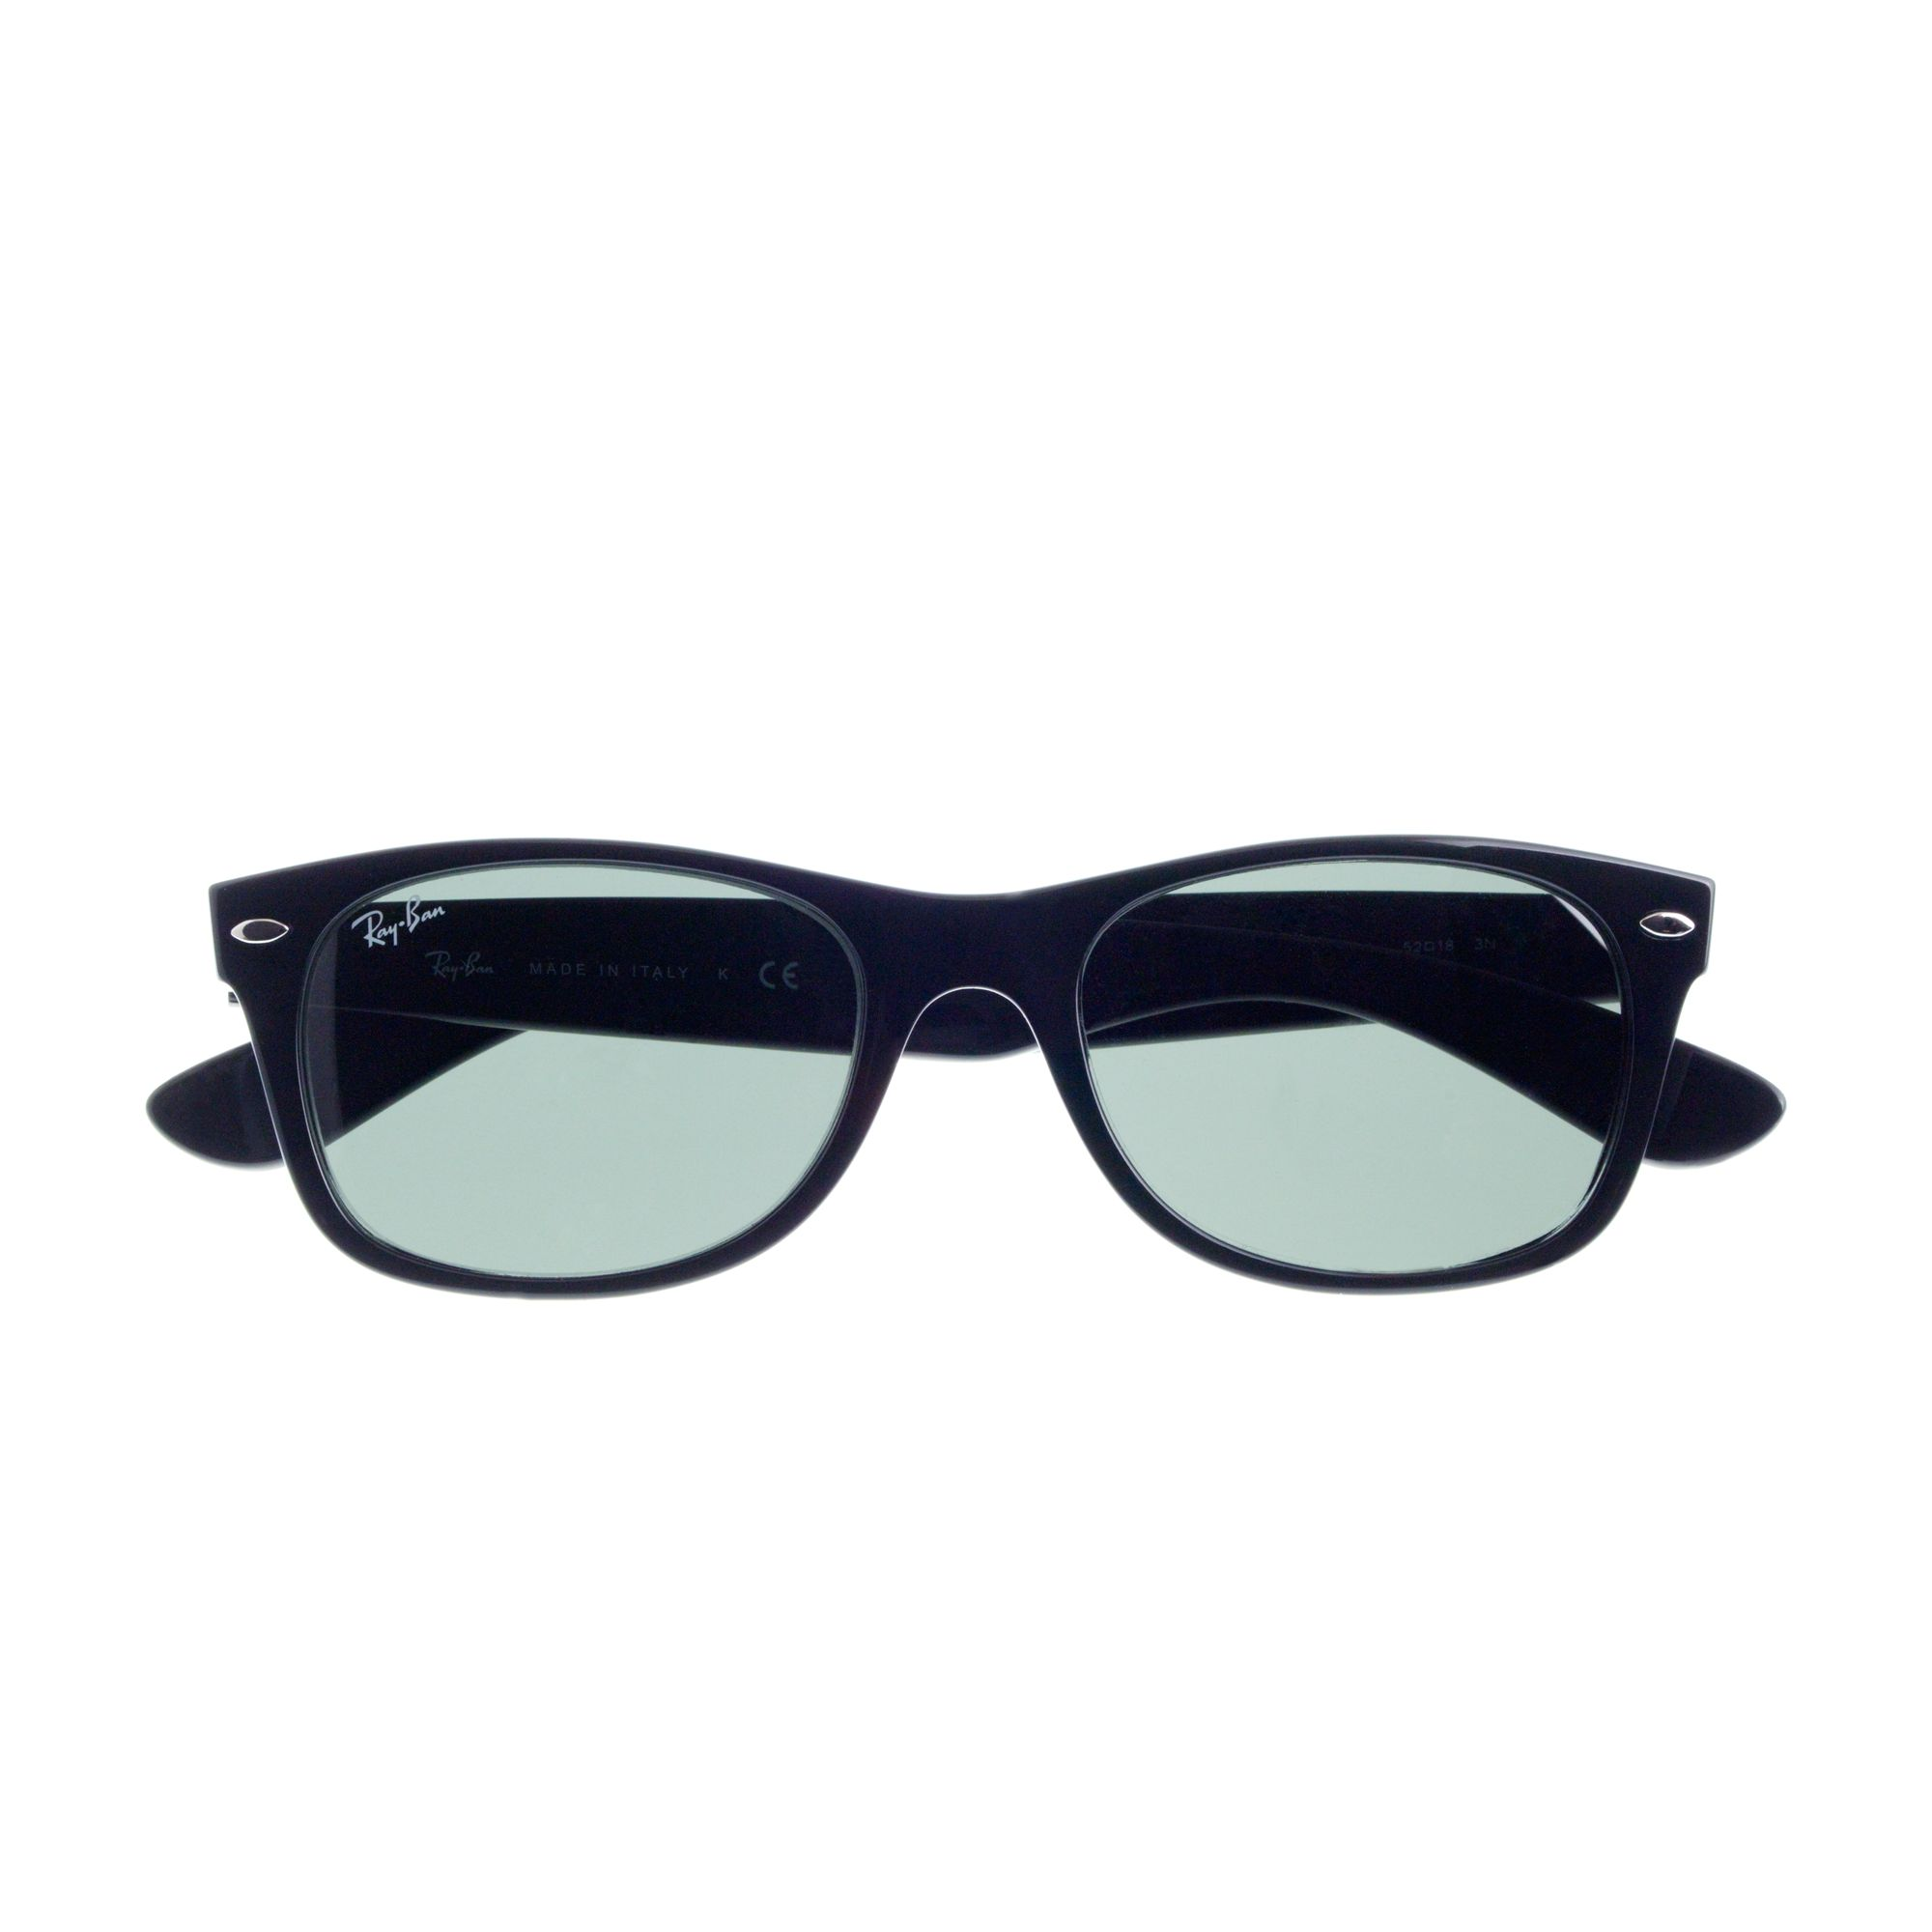 ray ban new wayfarer sunglasses in black for men lyst. Black Bedroom Furniture Sets. Home Design Ideas